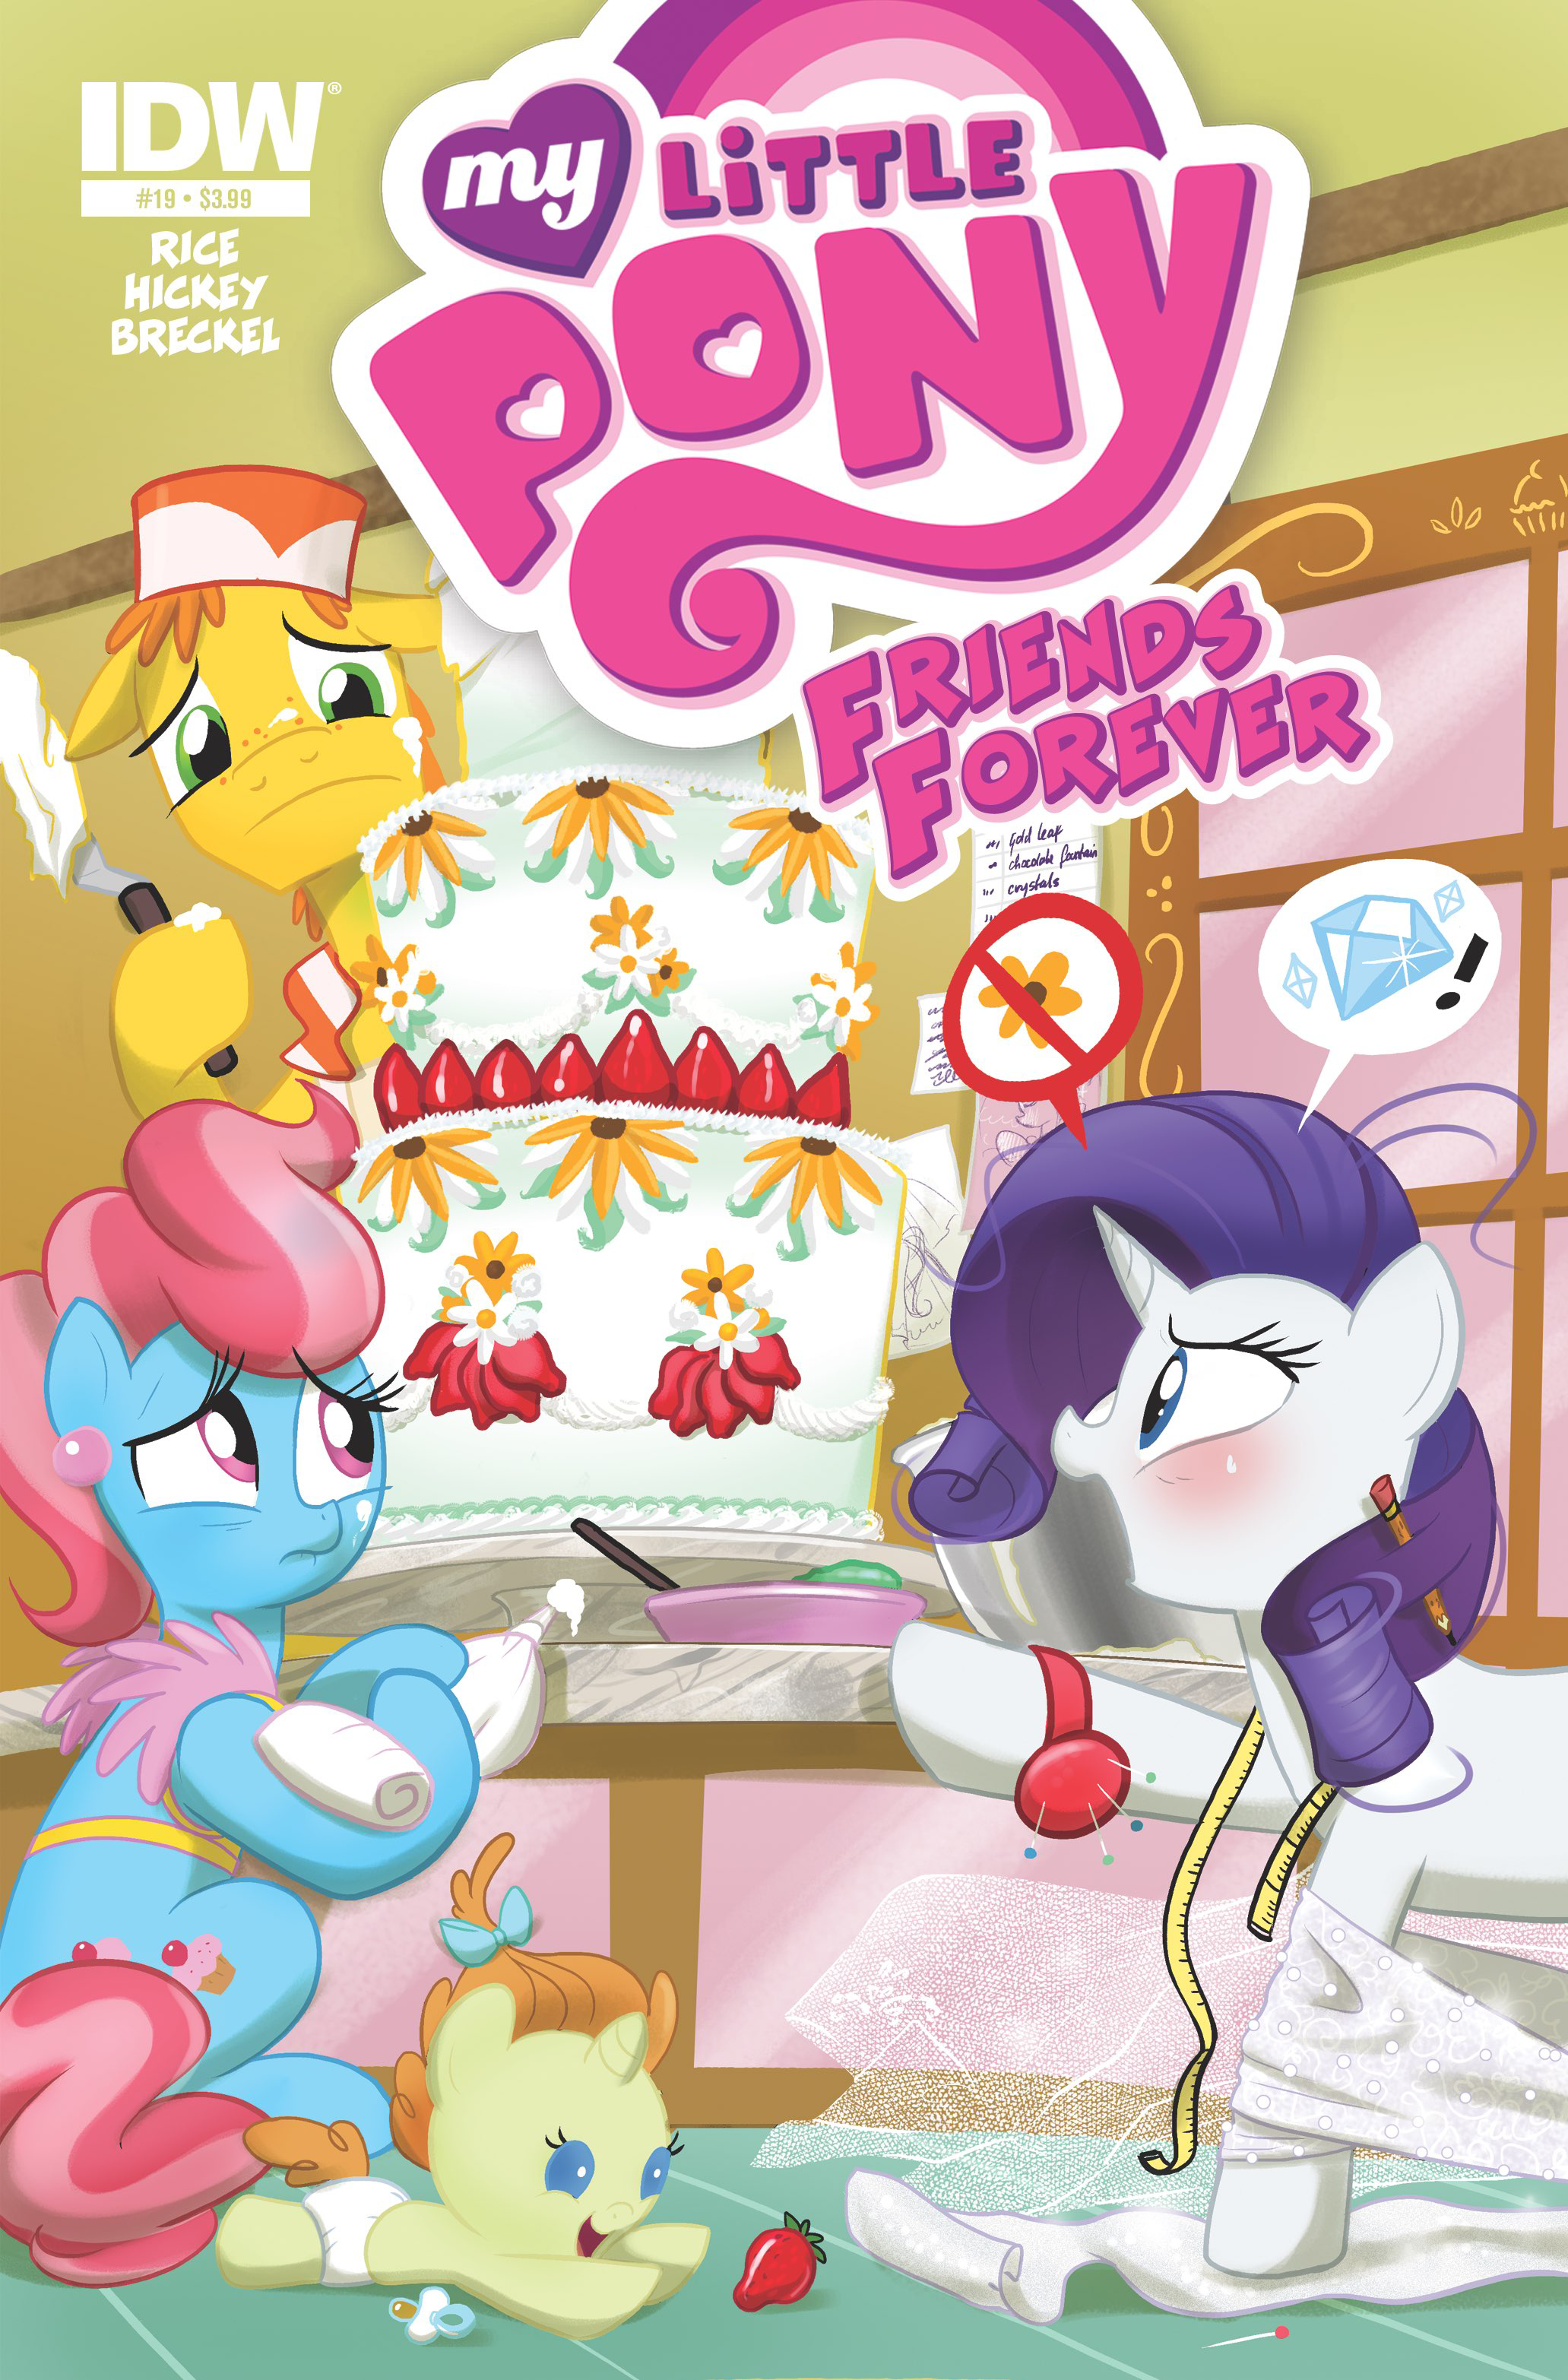 MY LITTLE PONY FRIENDS FOREVER #19